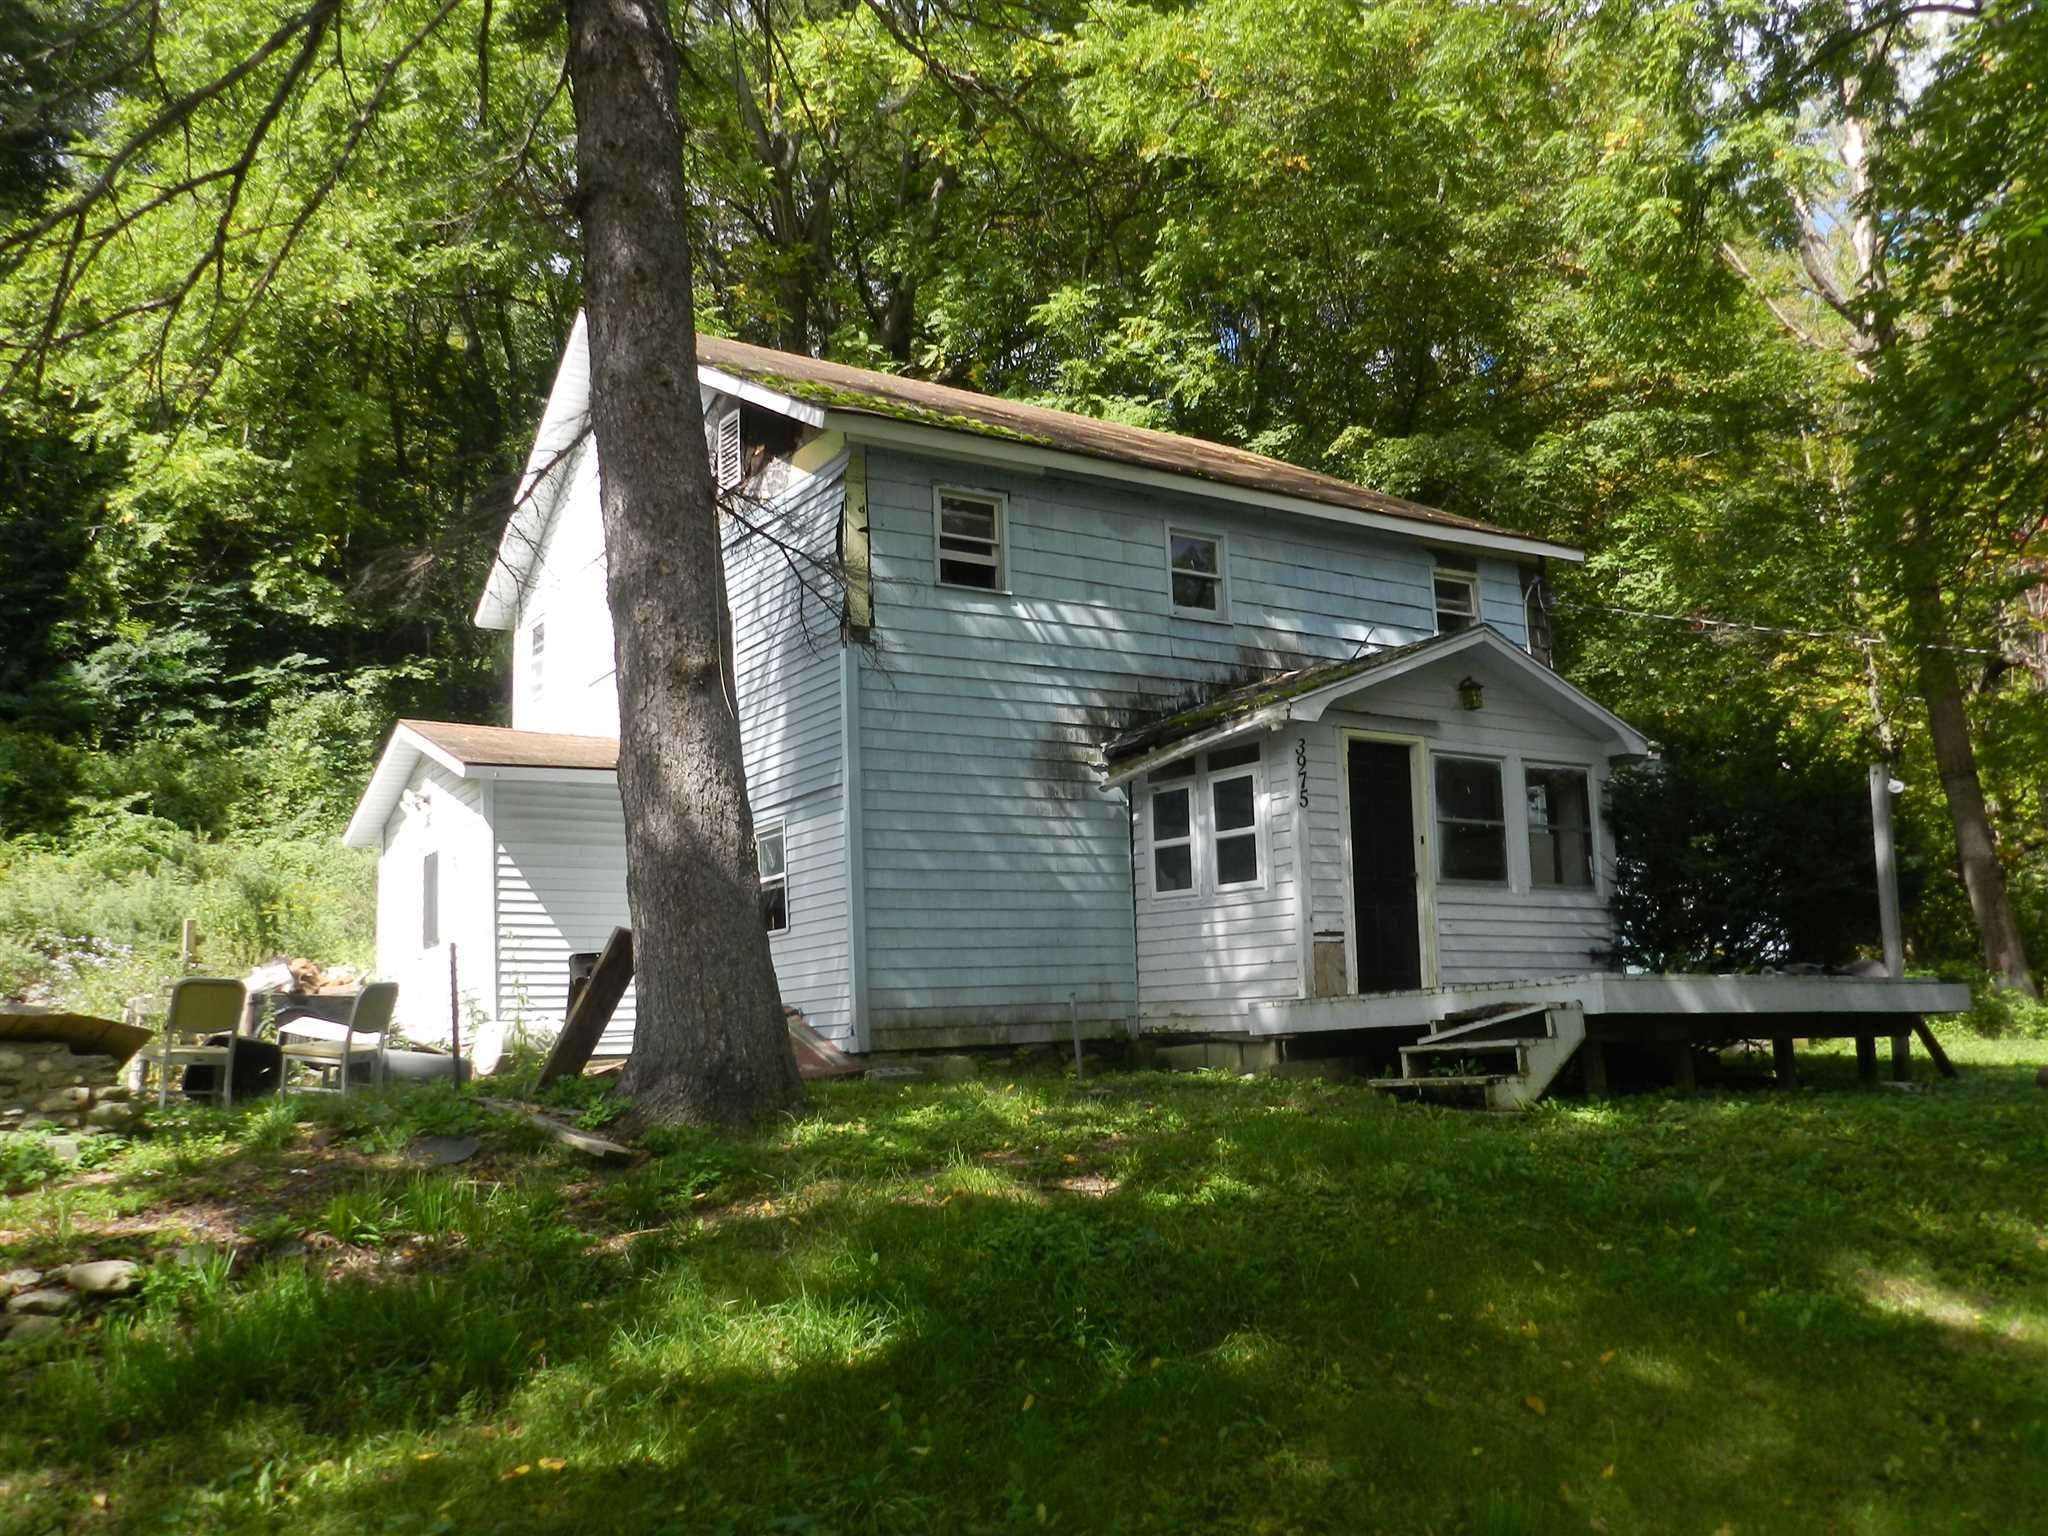 Single Family Home for Sale at 3975 ROUTE 22 3975 ROUTE 22 Amenia, New York 12592 United States